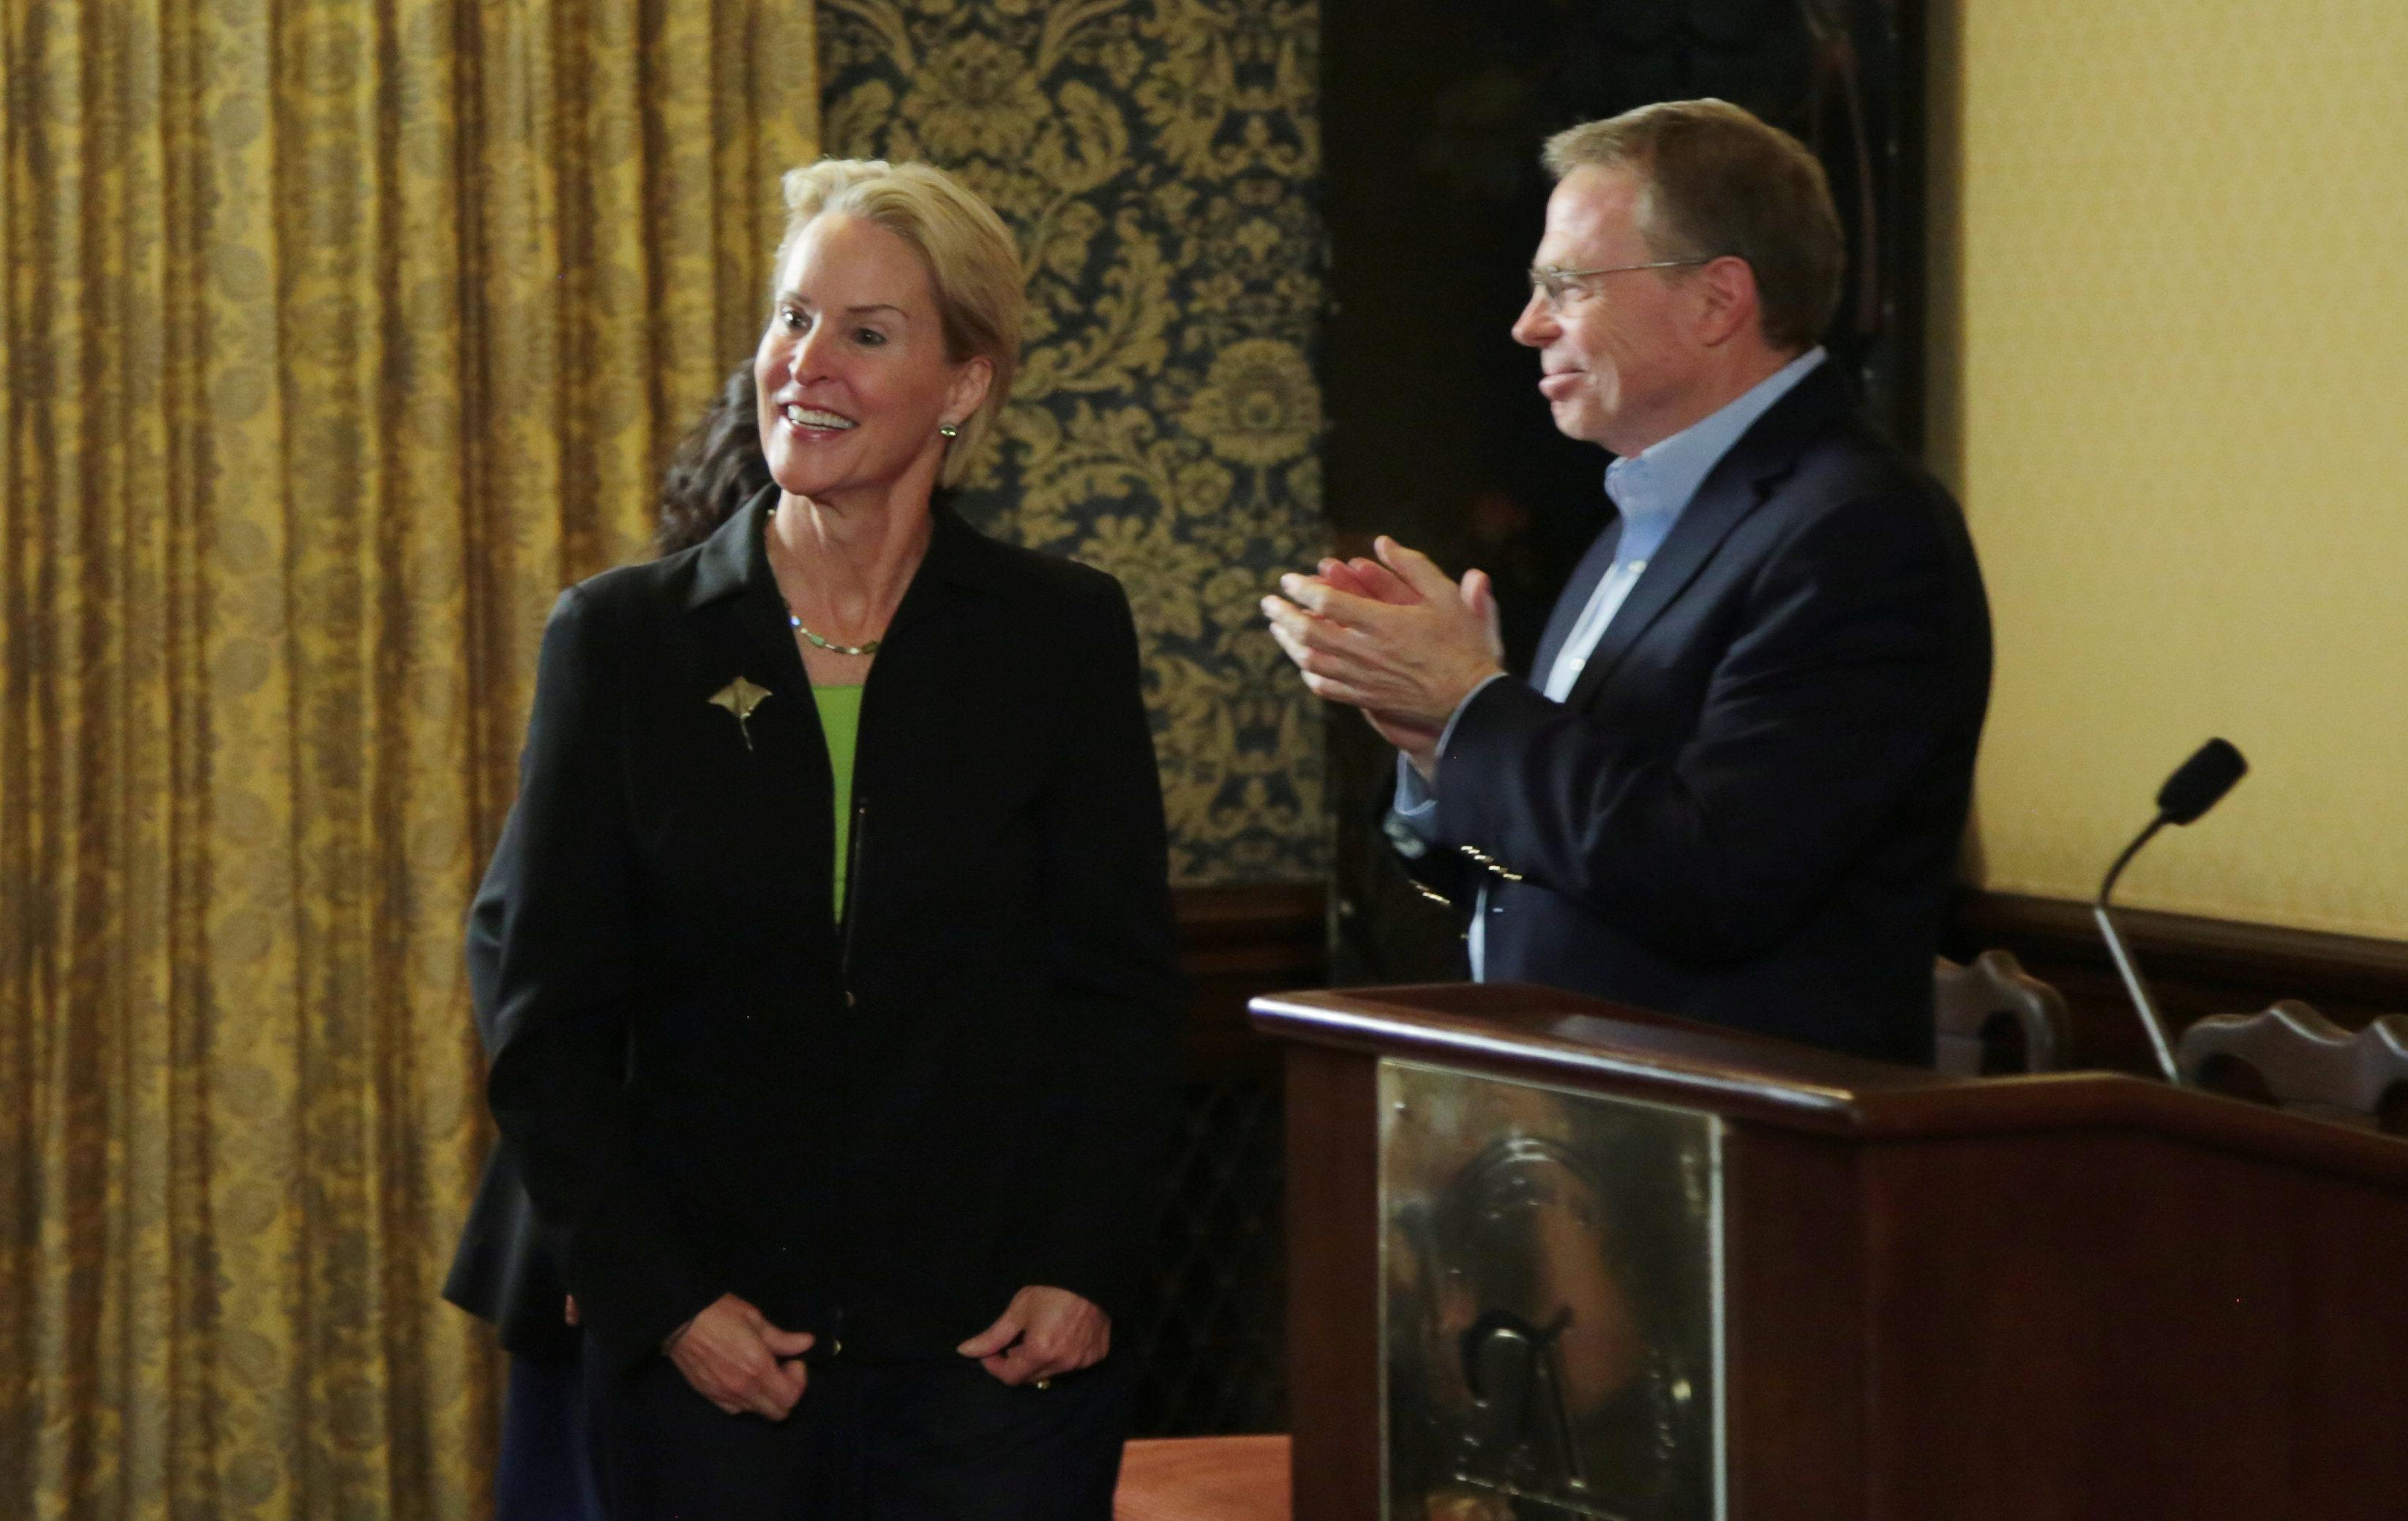 Frances Arnold, winner of the 2018 Nobel Prize in Chemistry, is applauded by Caltech Provost David A. Tirrell (R), during a news conference at California Institute of Technology (Caltech) in Pasadena, California, U.S., October 3, 2018.    Kyle Grillot?